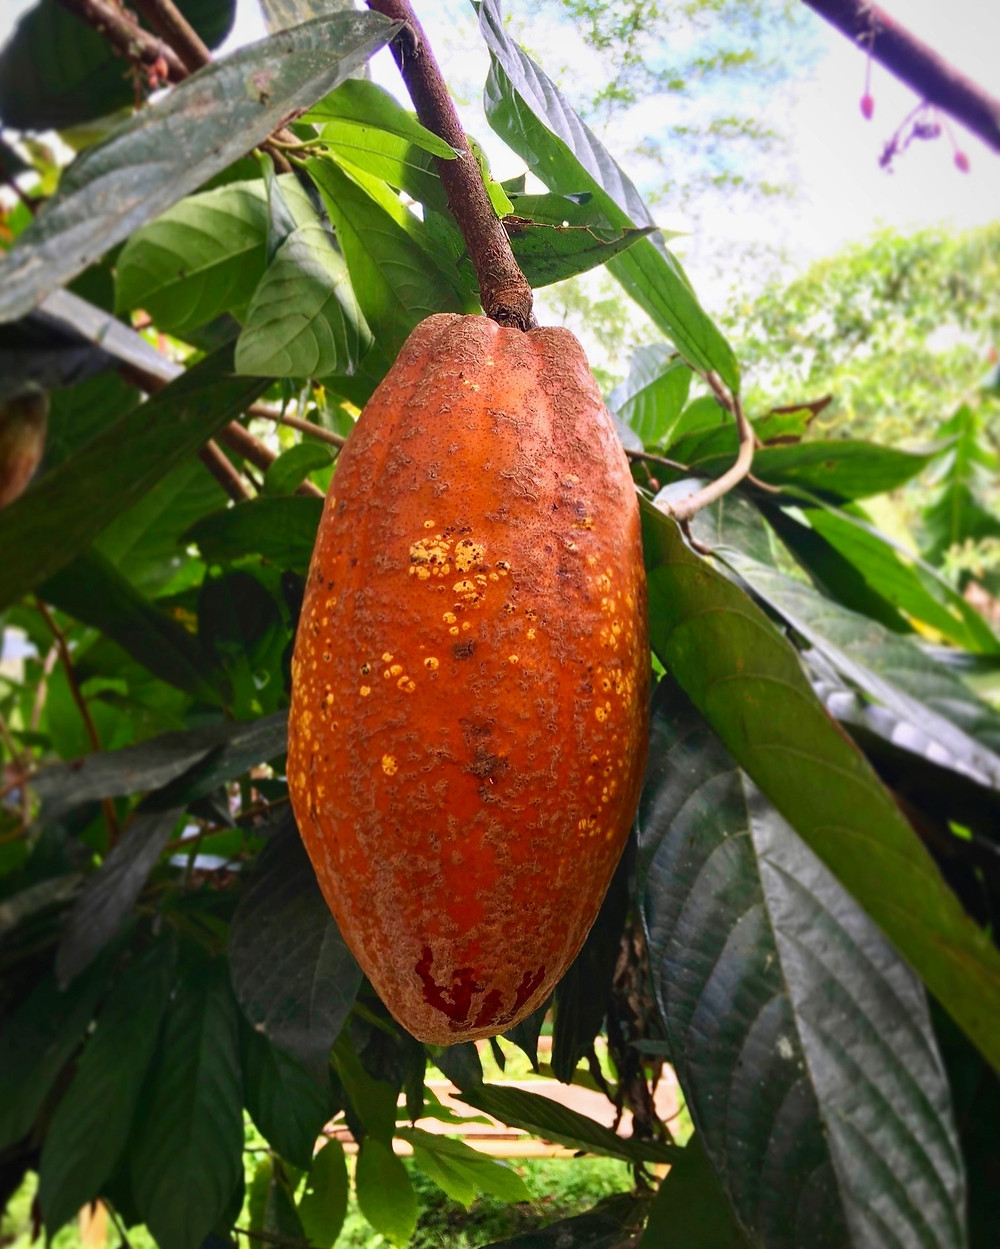 An orange cacao pod hanging in a cacao tree